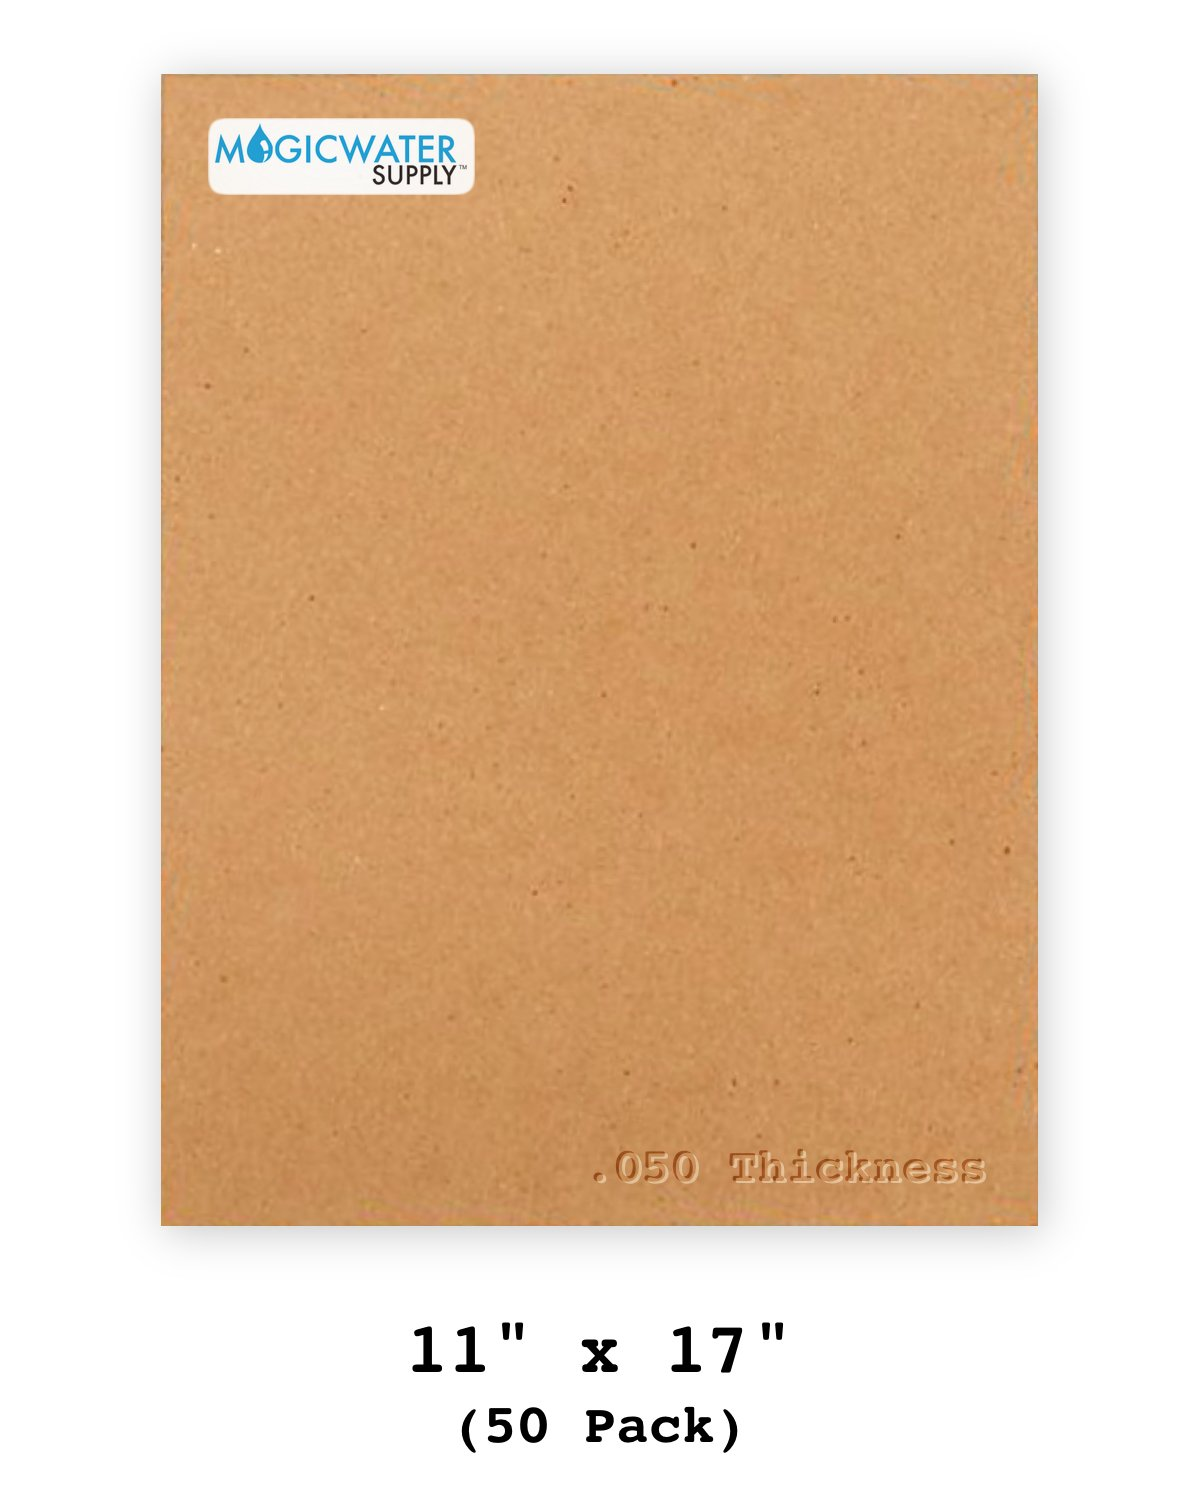 50 Sheets Chipboard 11 x 17 inch - 50pt (Point) Heavy Weight Brown Kraft Cardboard Scrapbook Sheets & Picture Frame Backing (.050 Caliper Thick) Paper Board | MagicWater Supply MWS